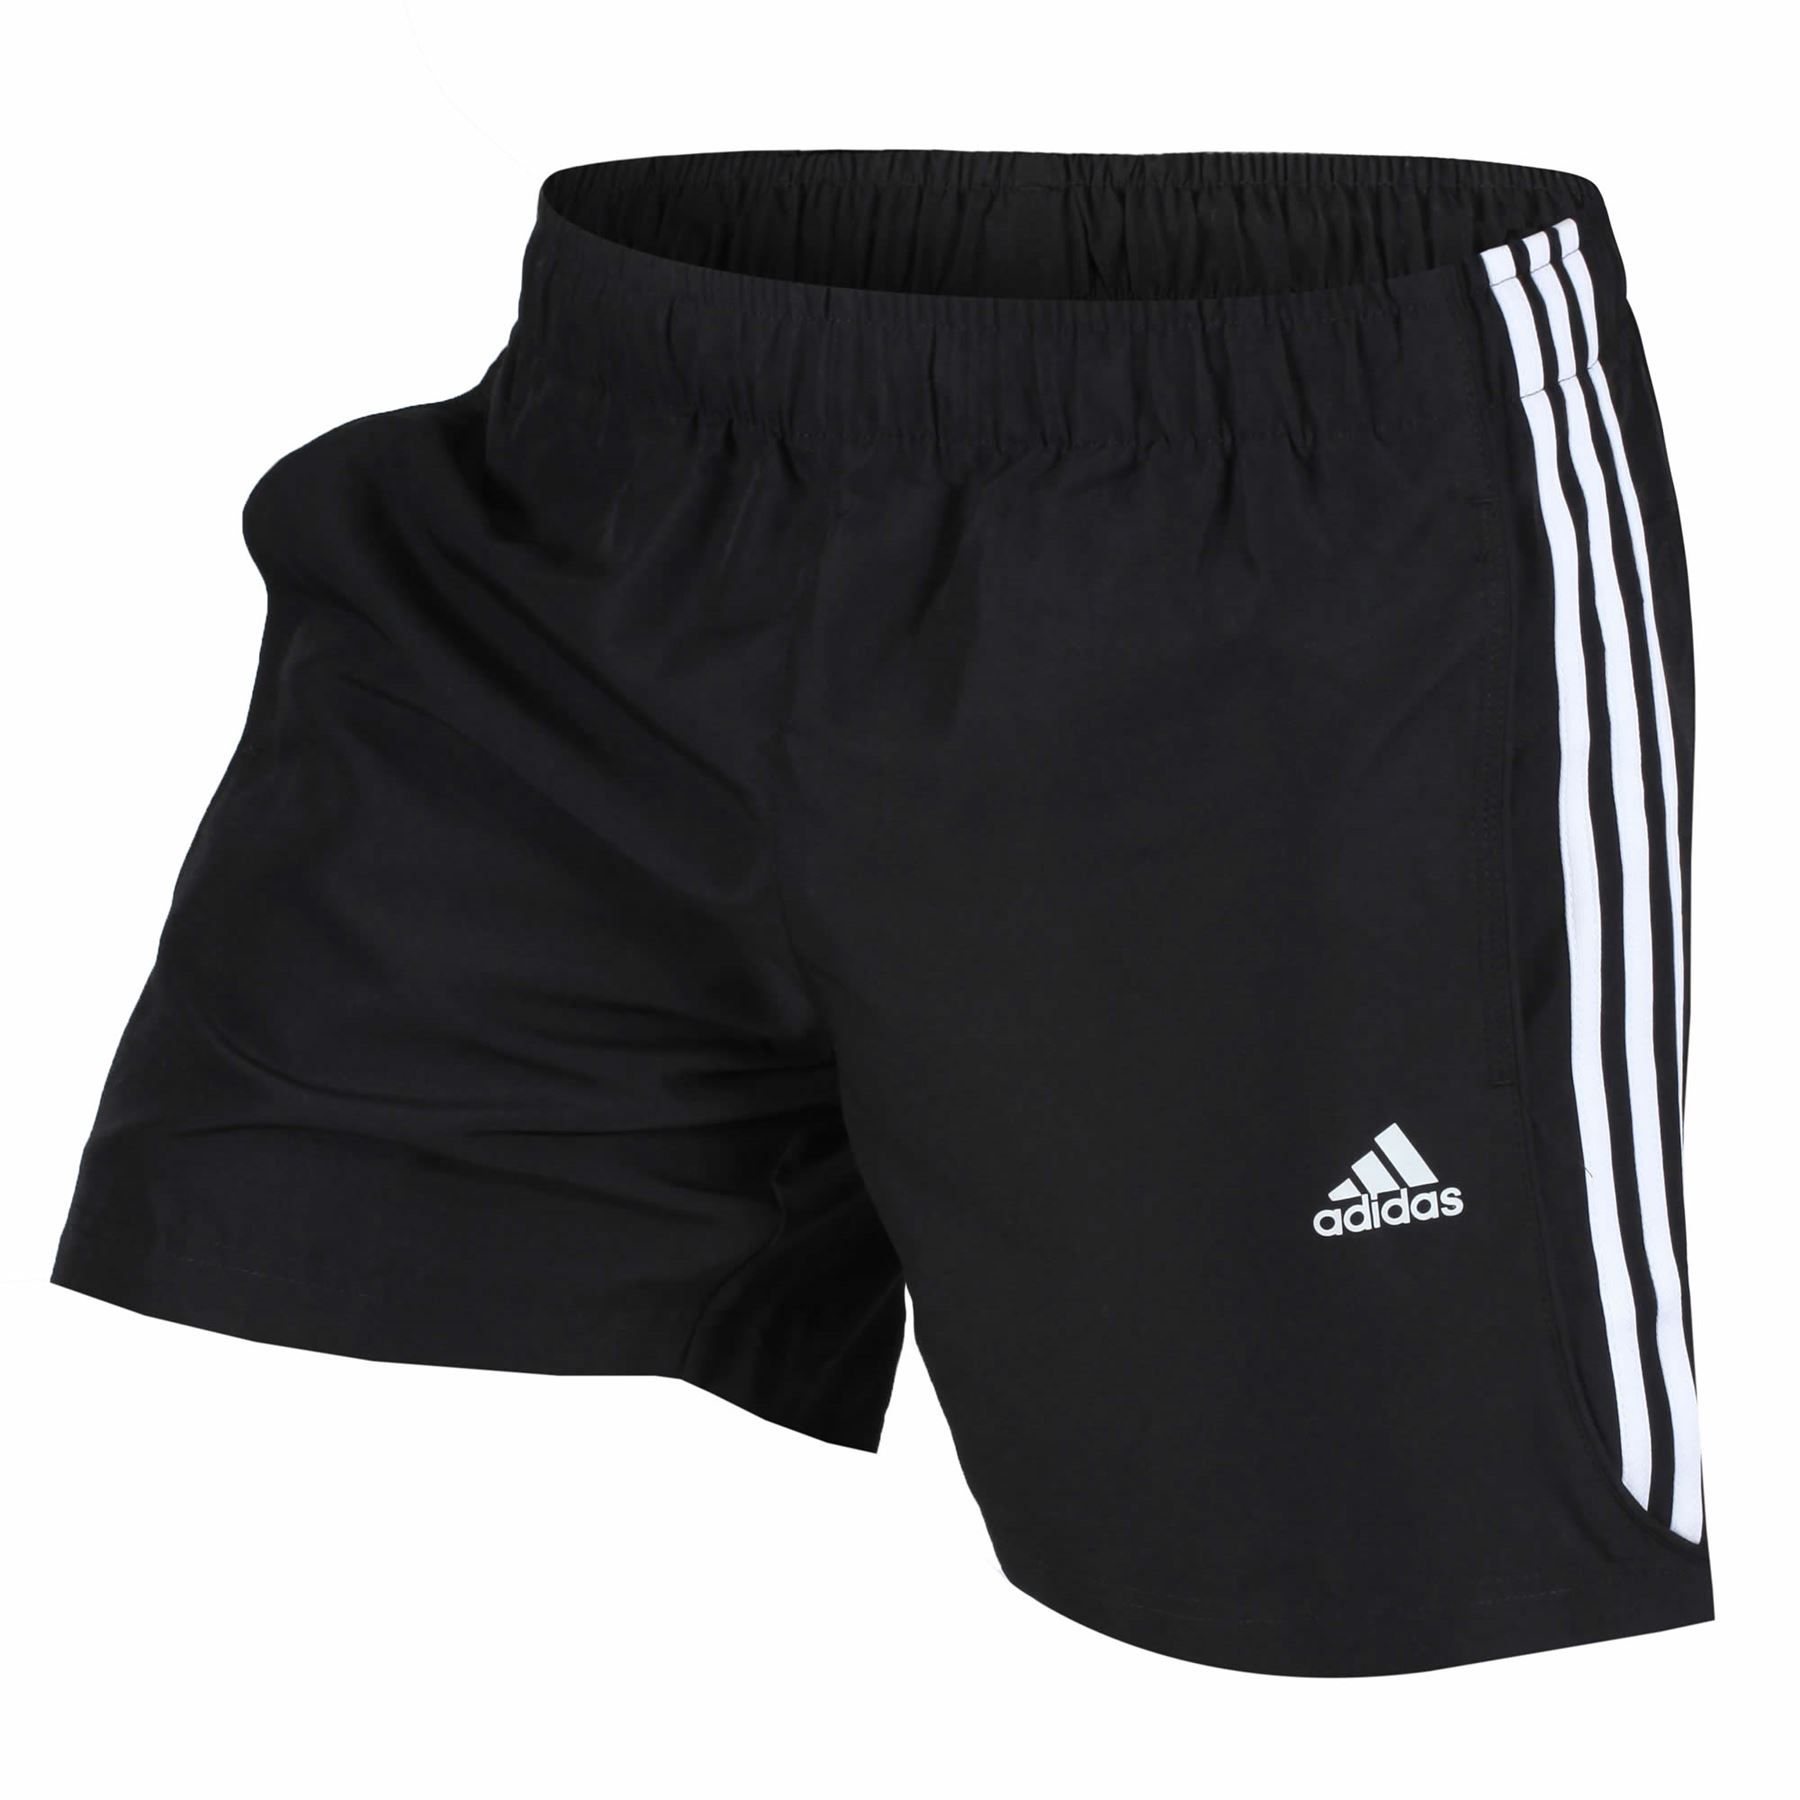 info for 39be0 a29a6 adidas ESSENTIALS 3 STRIPE CHELSEA SHORTS MENS BLACK WHITE CLIMALITE GYM